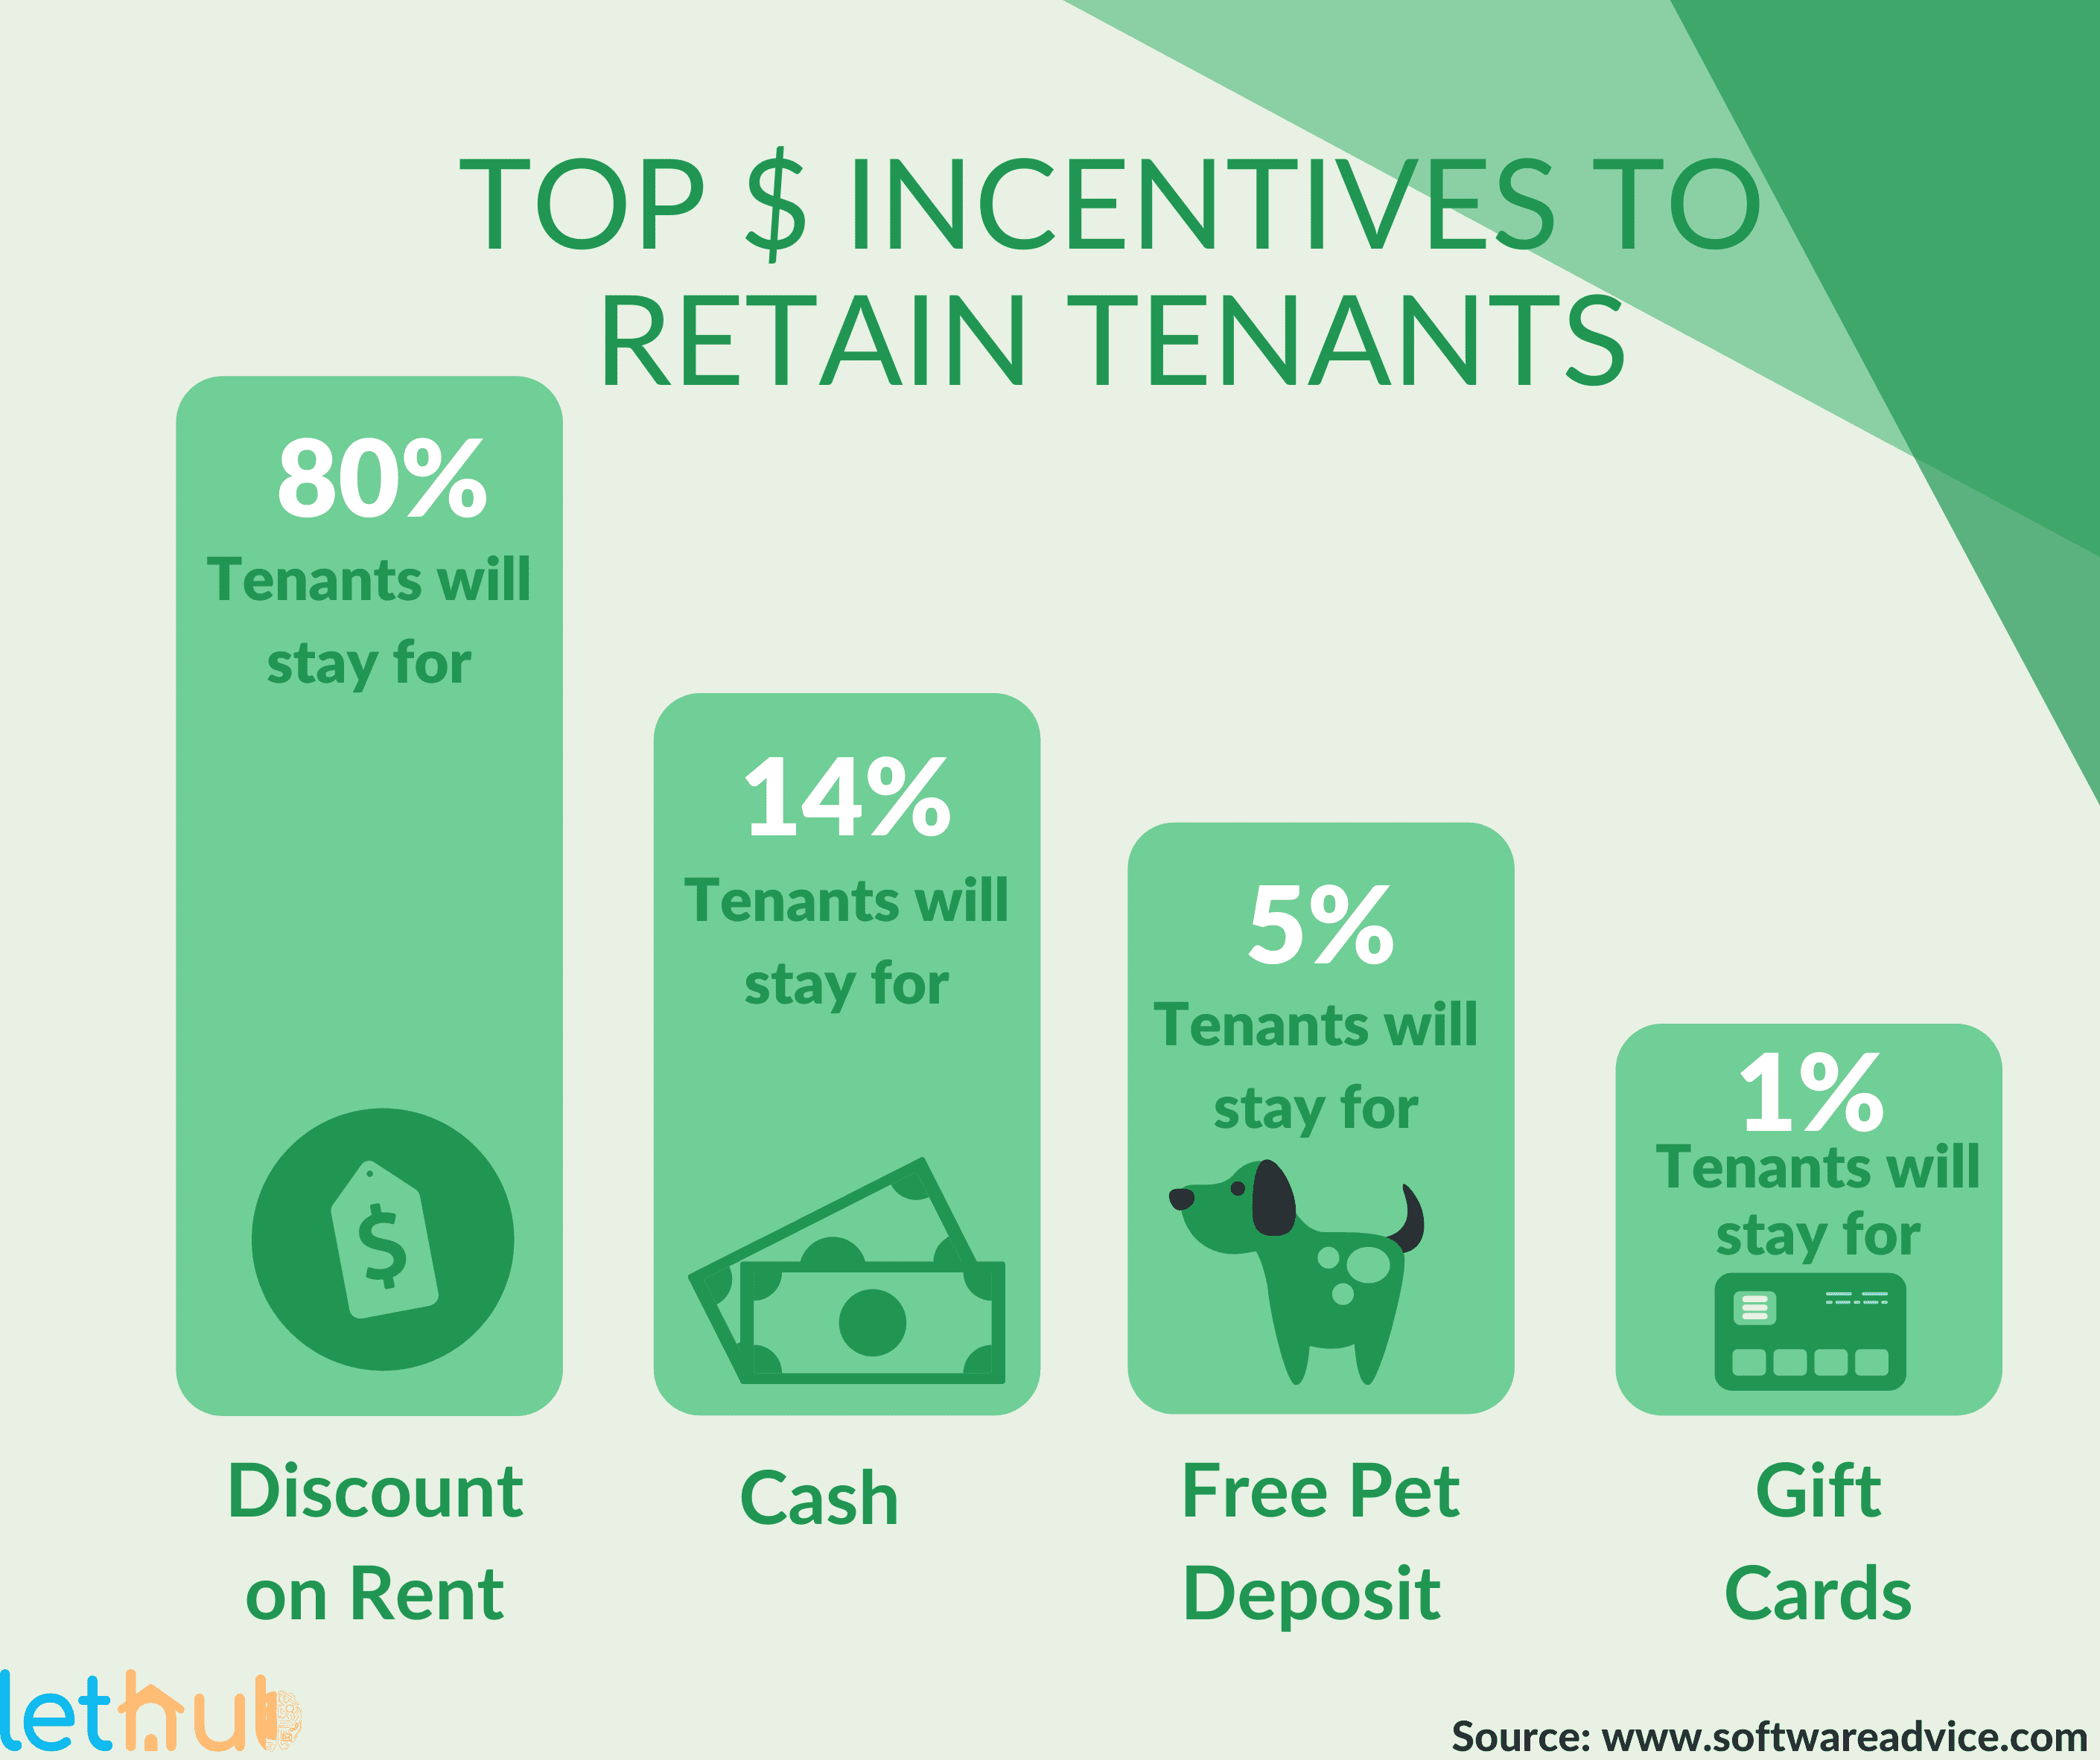 Top dollar incentives for tenant retention for property managers